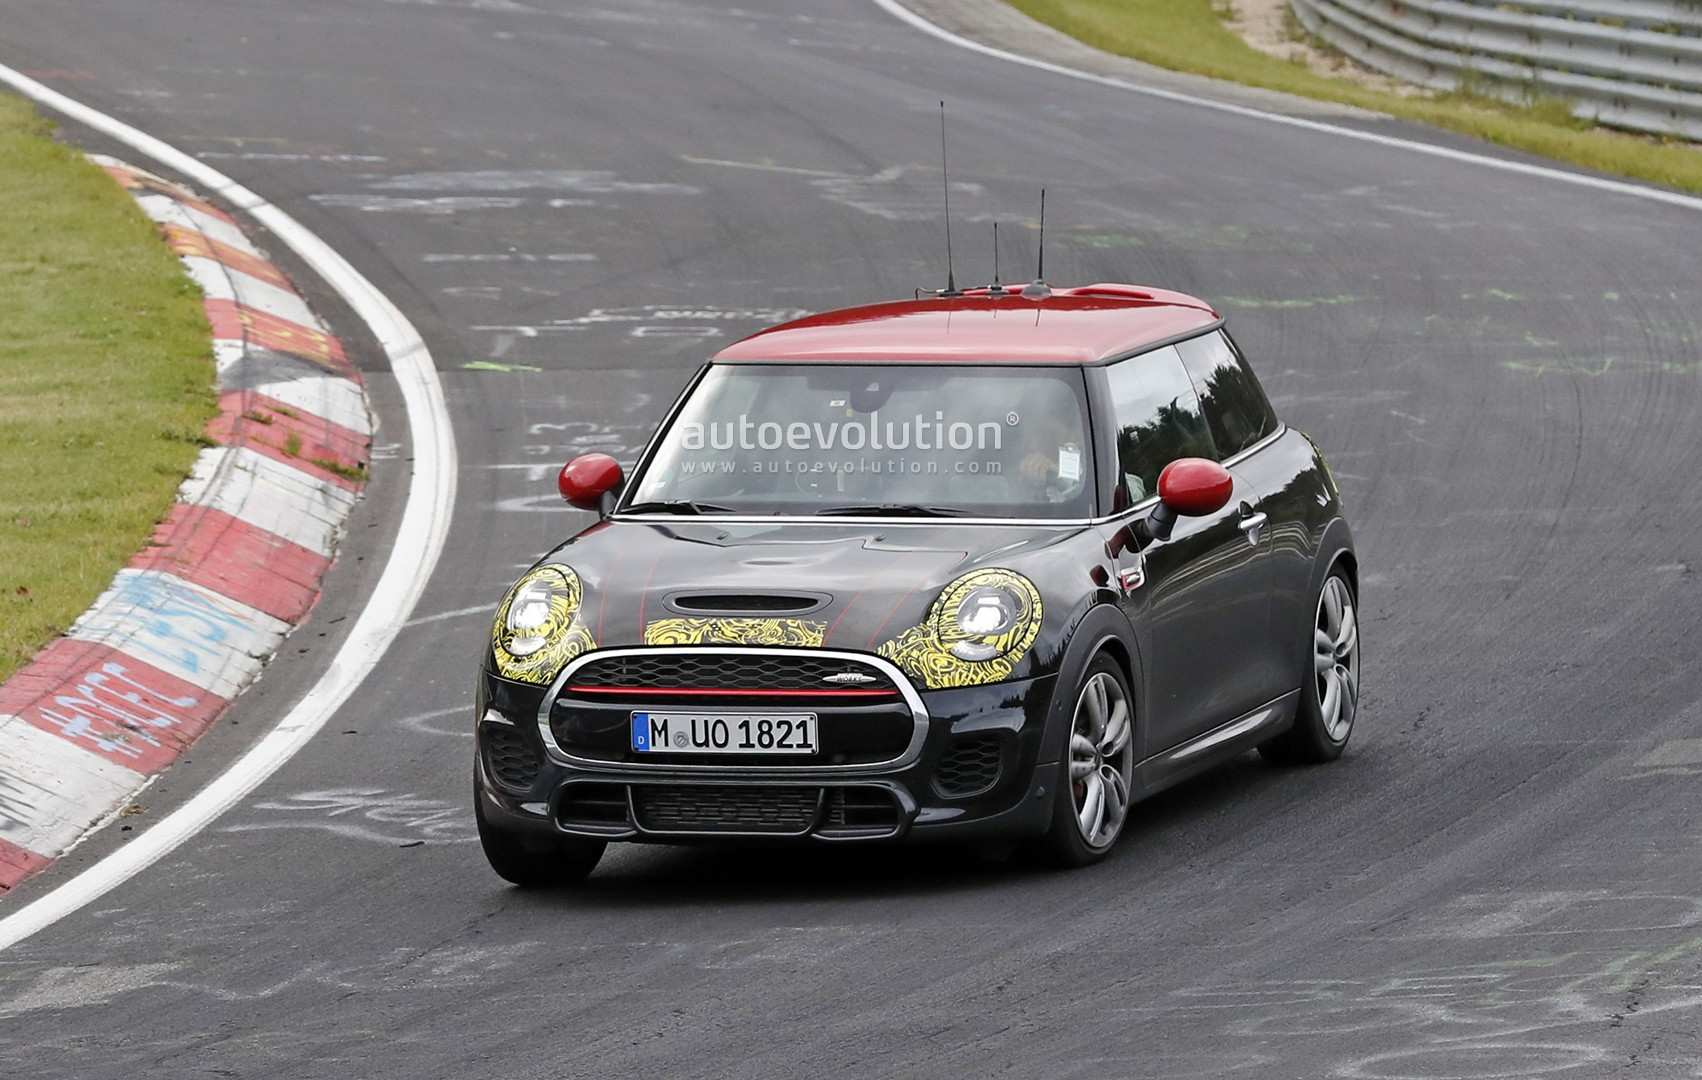 67 New Spy Shots Mini Countryman Concept